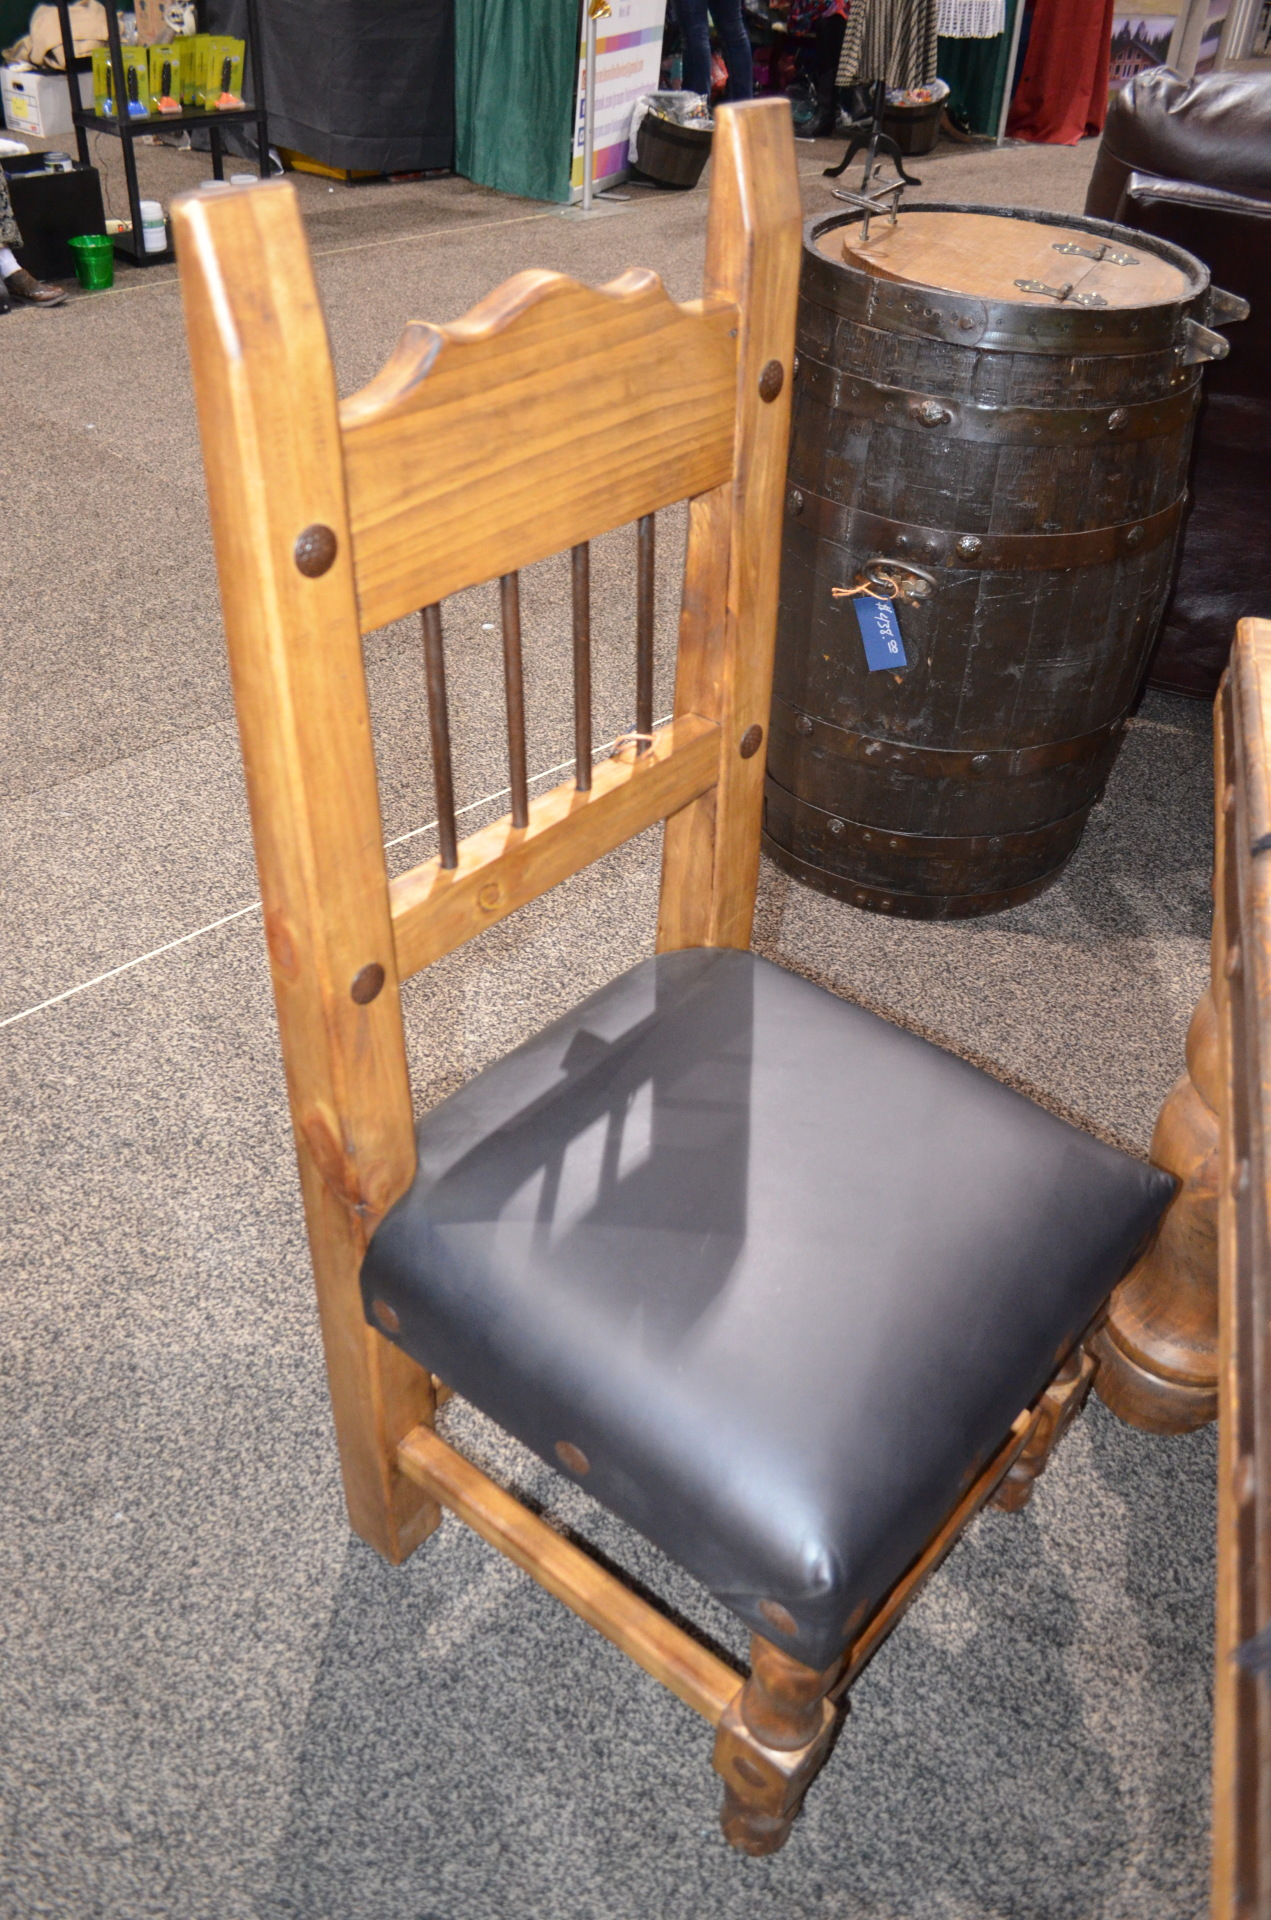 Torno Chair with Leather Seat and Iron Spindles.  $312